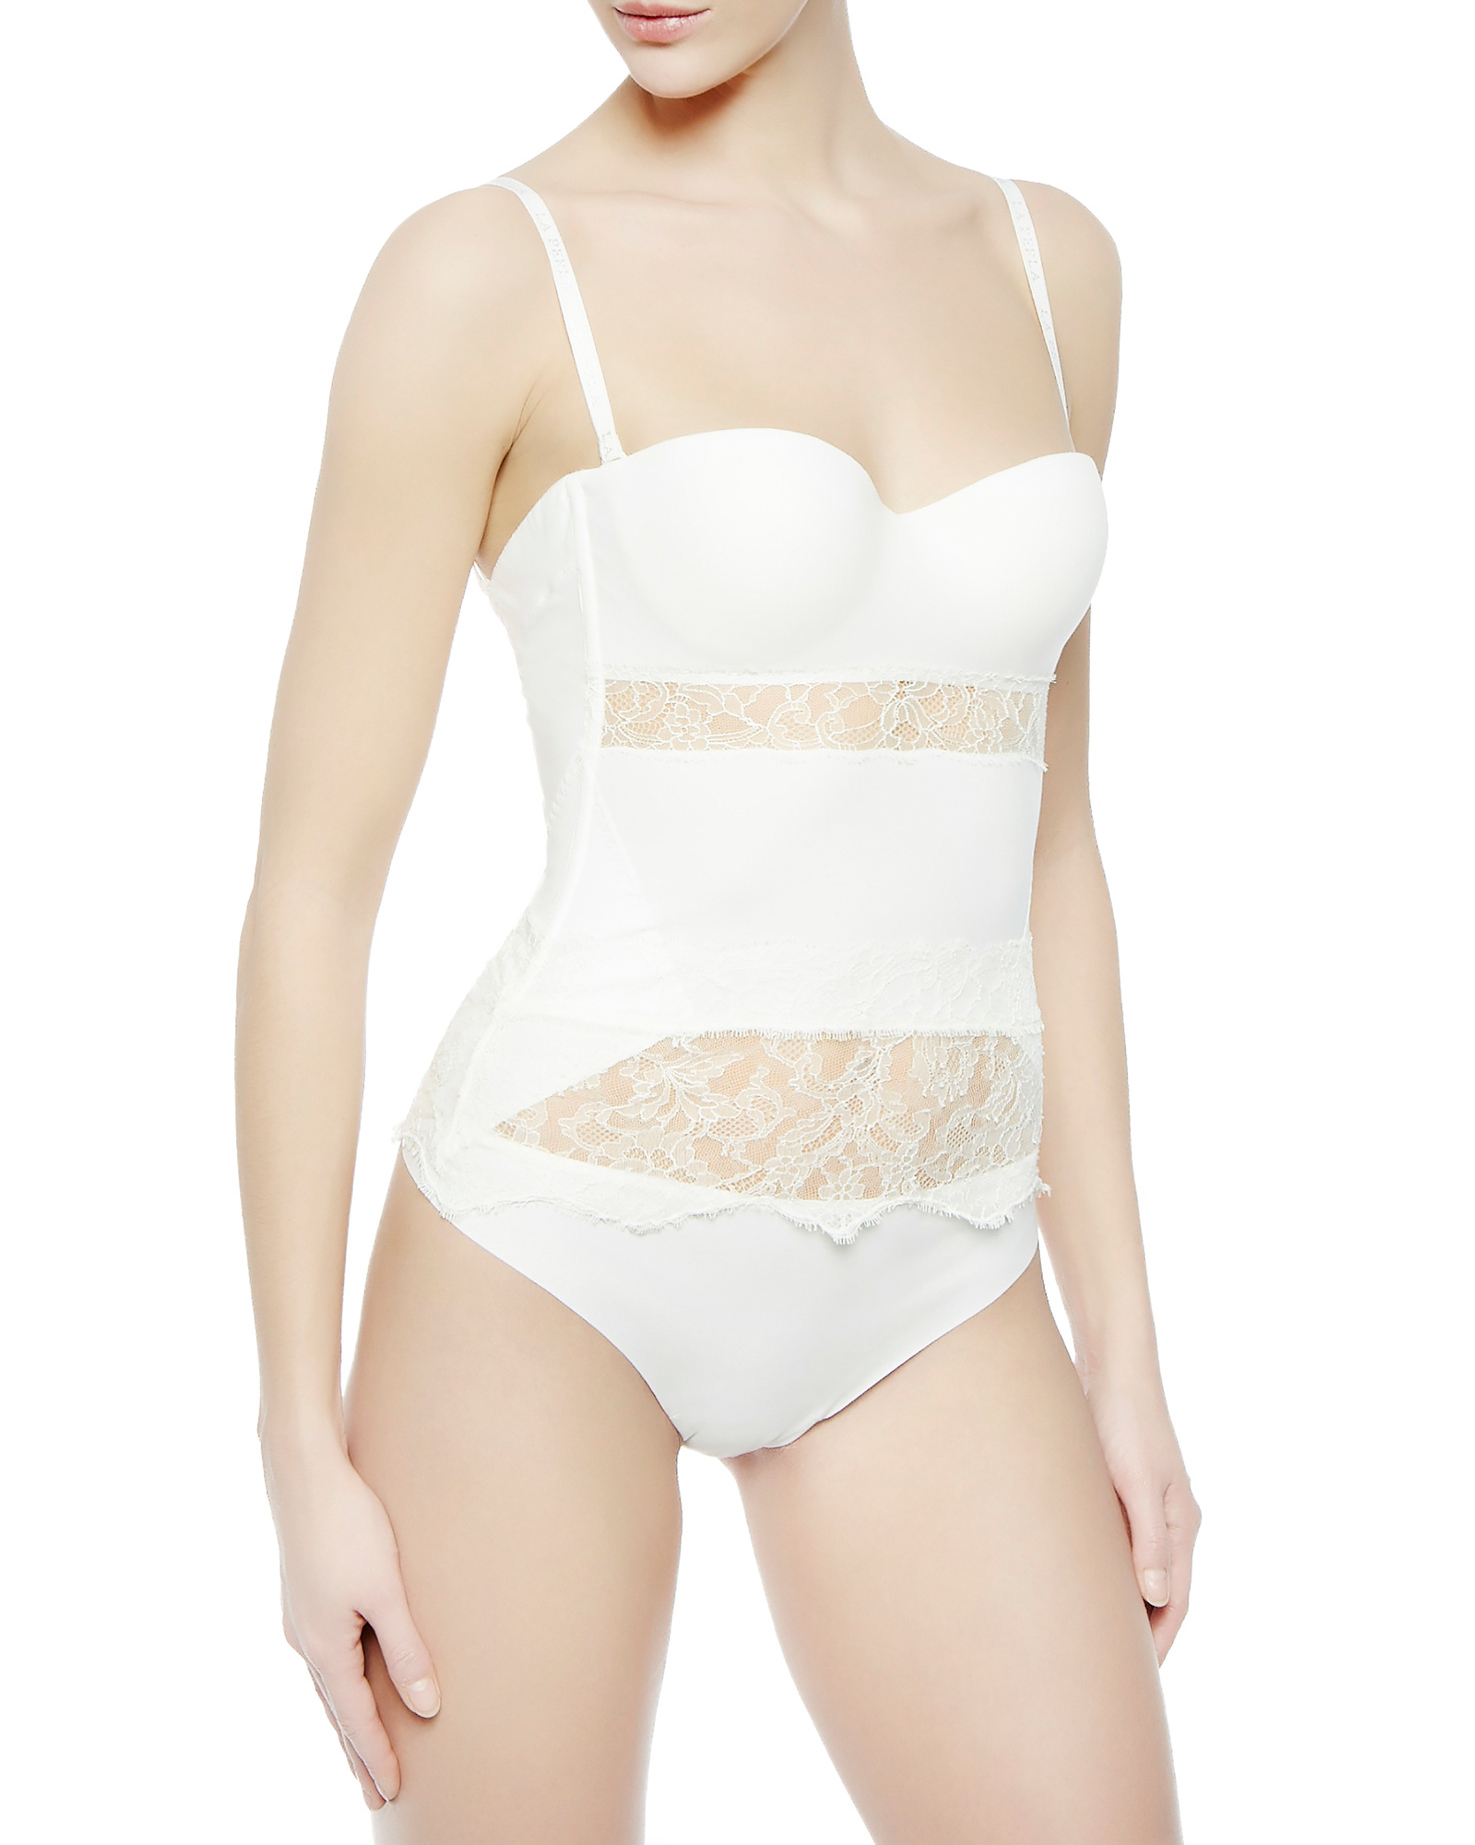 shapewear-that-isnt-ugly-la-perla.jpg